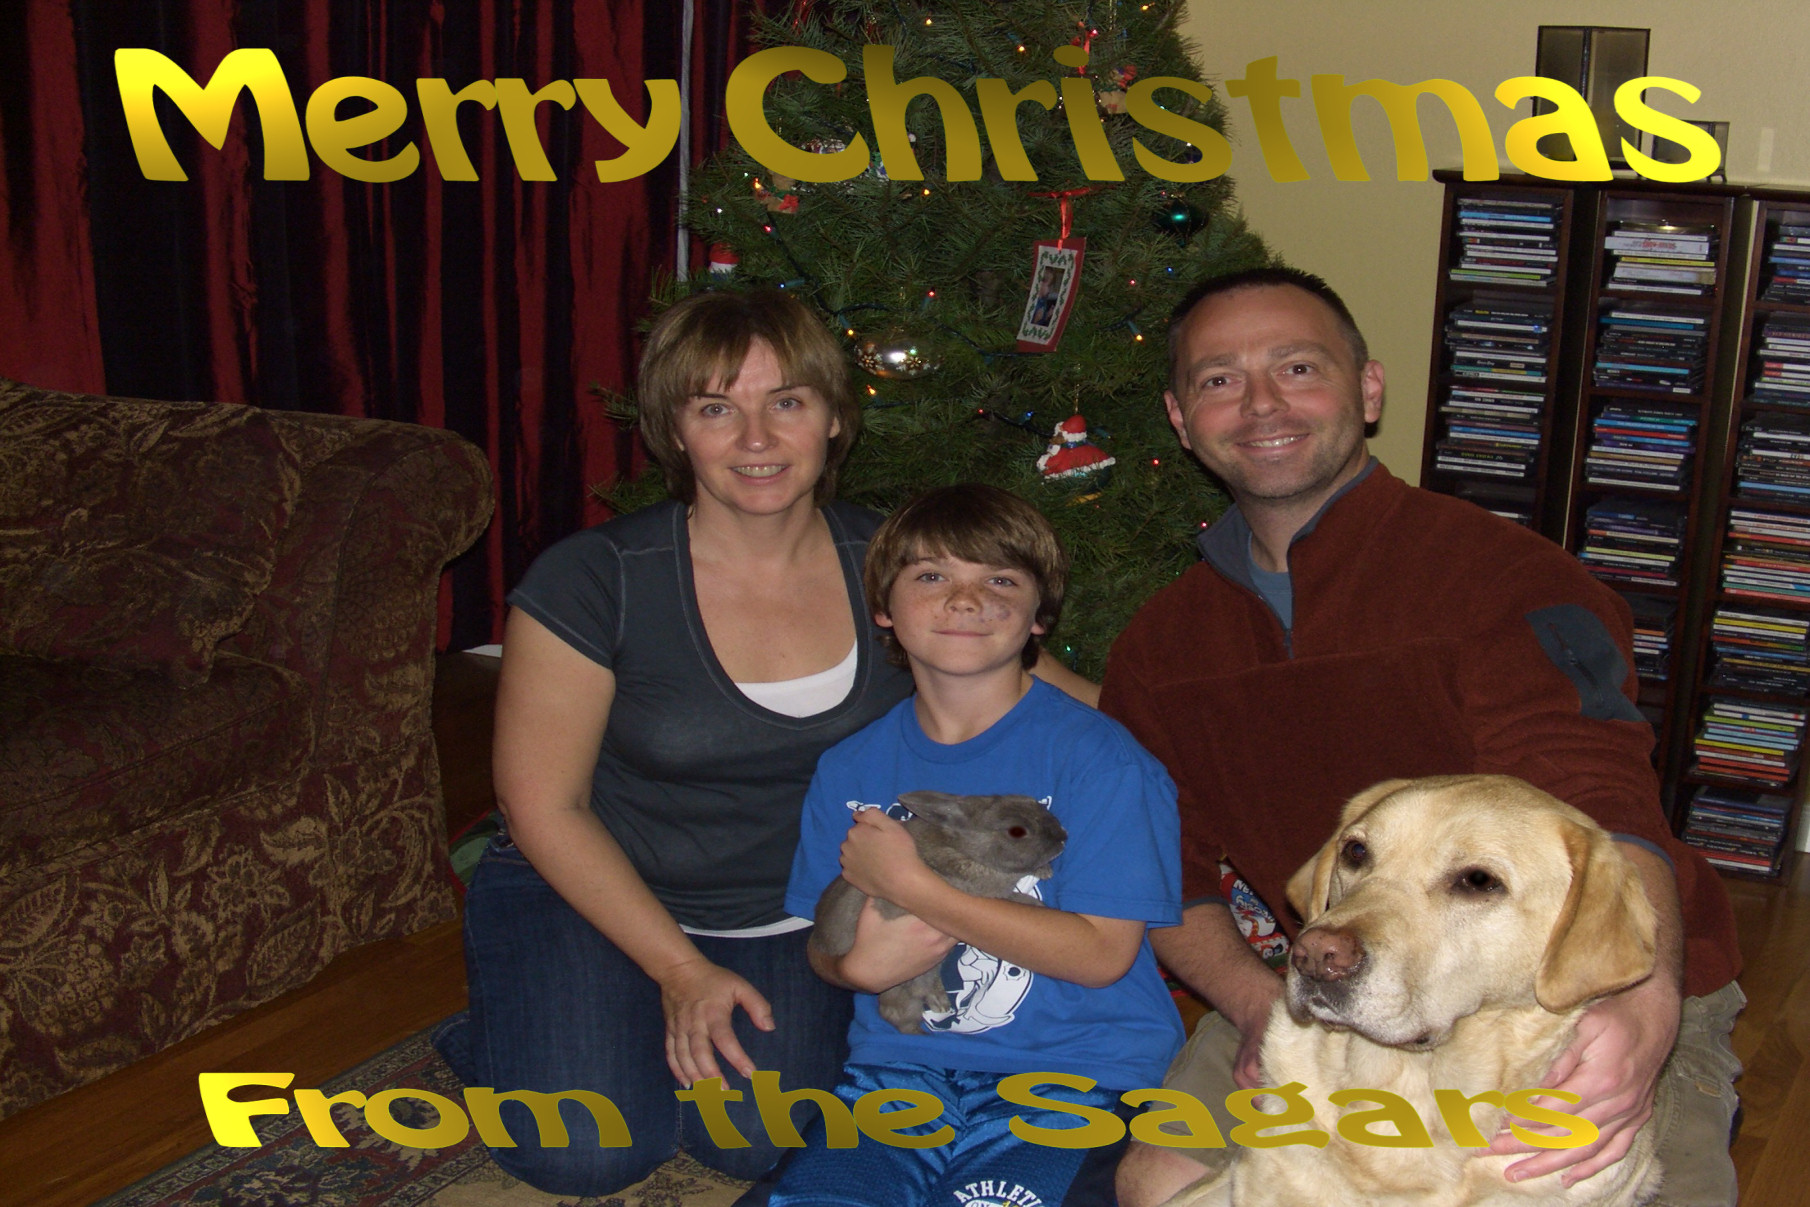 Merry Christmas from the Sagars